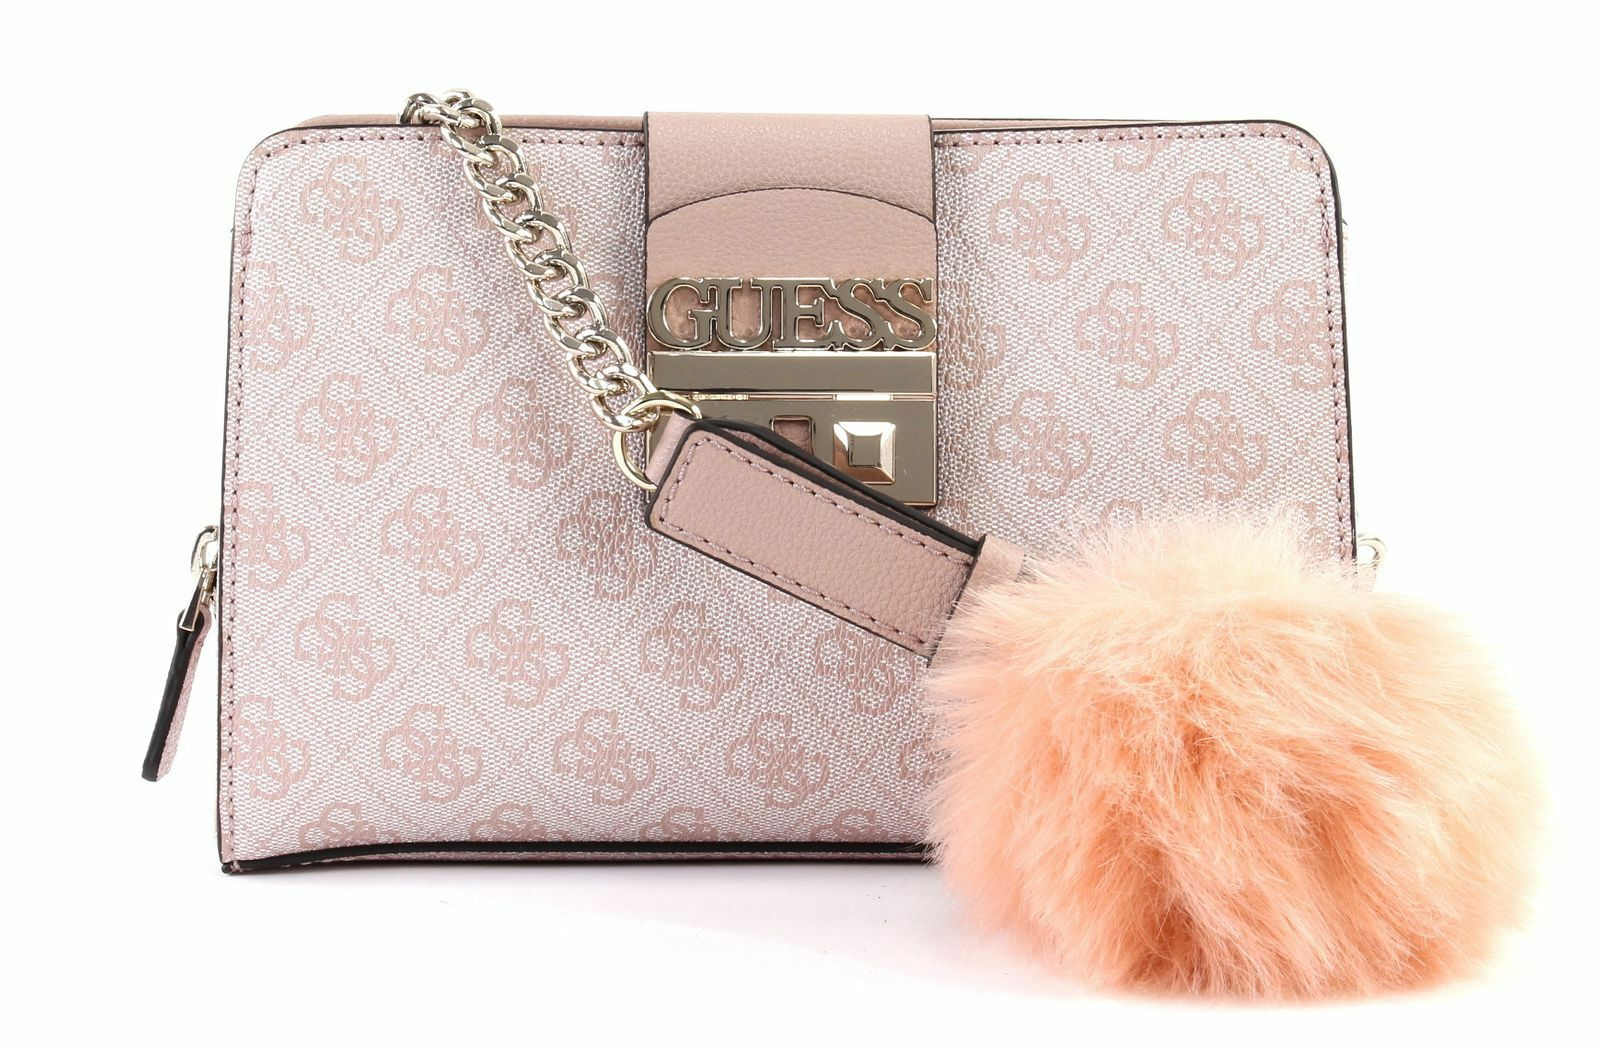 GUESS Cross Body Bag Logo Luxe Crossbody Blush for sale online  a212b45169